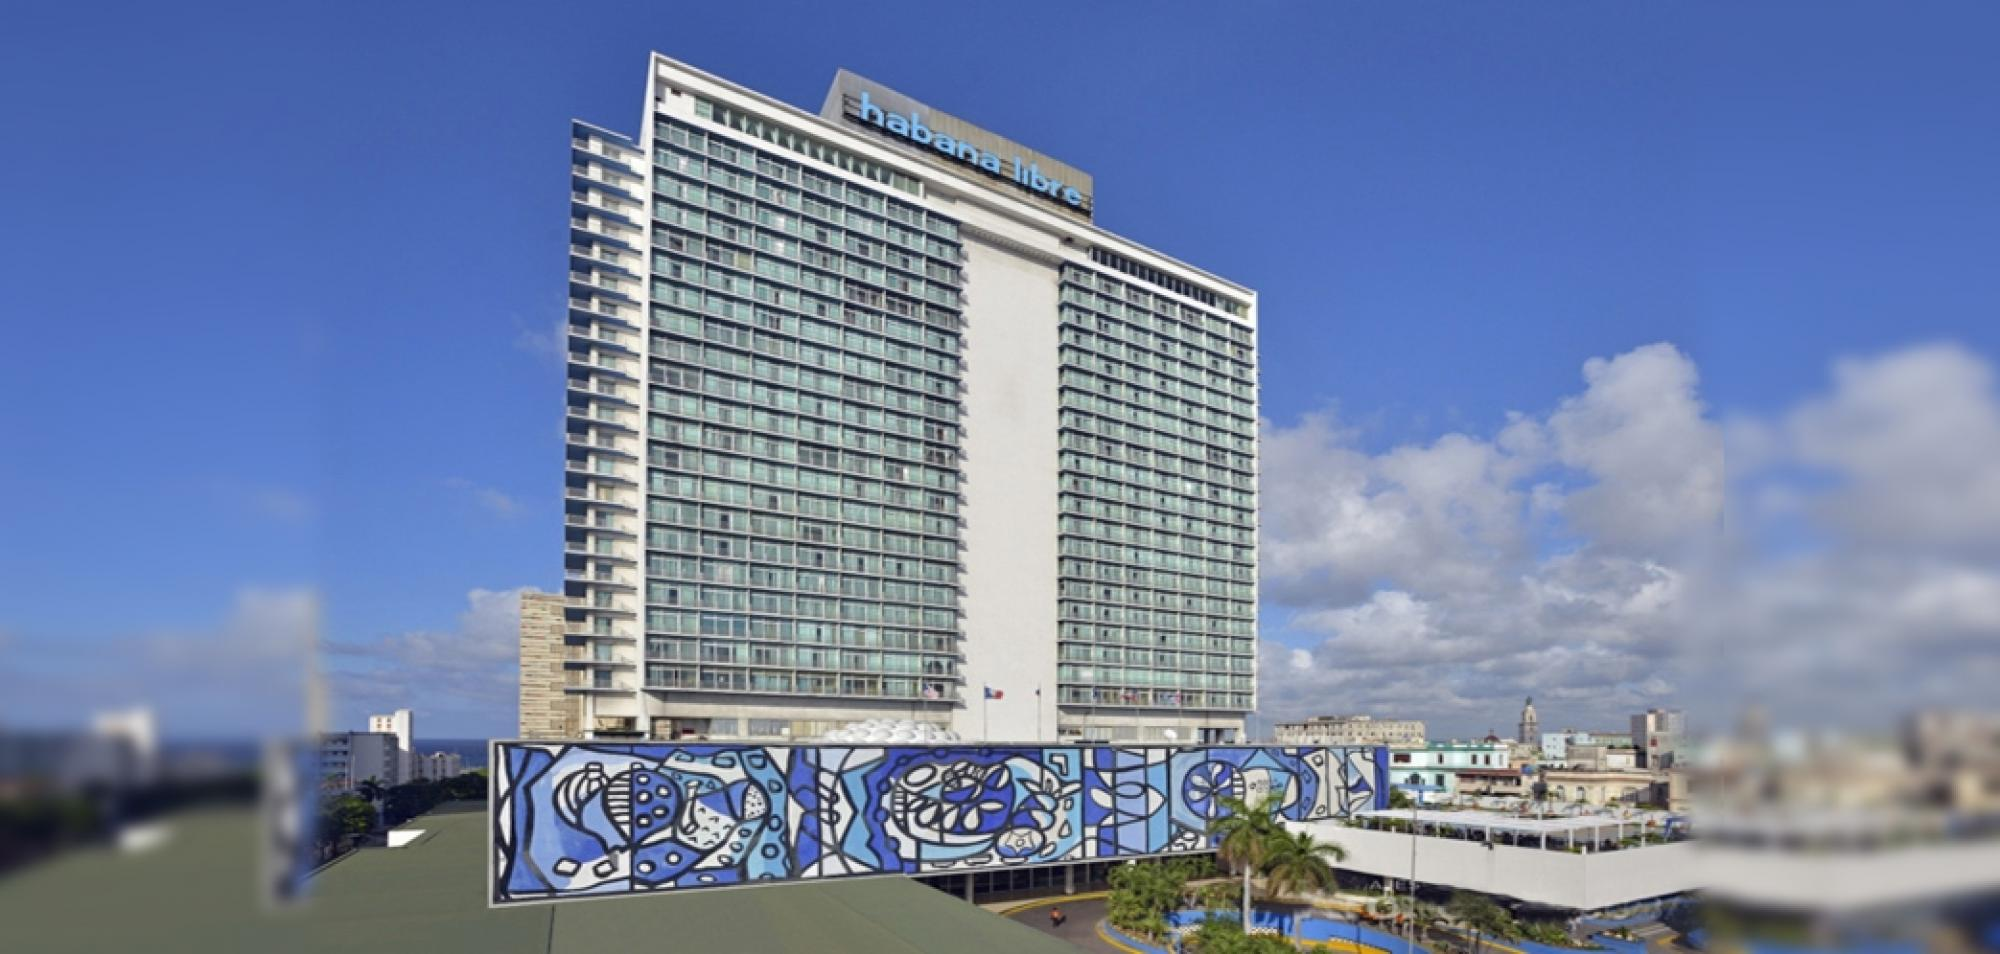 Habana Libre Hotel, Venue of the Pan-American Cocktail Tournament